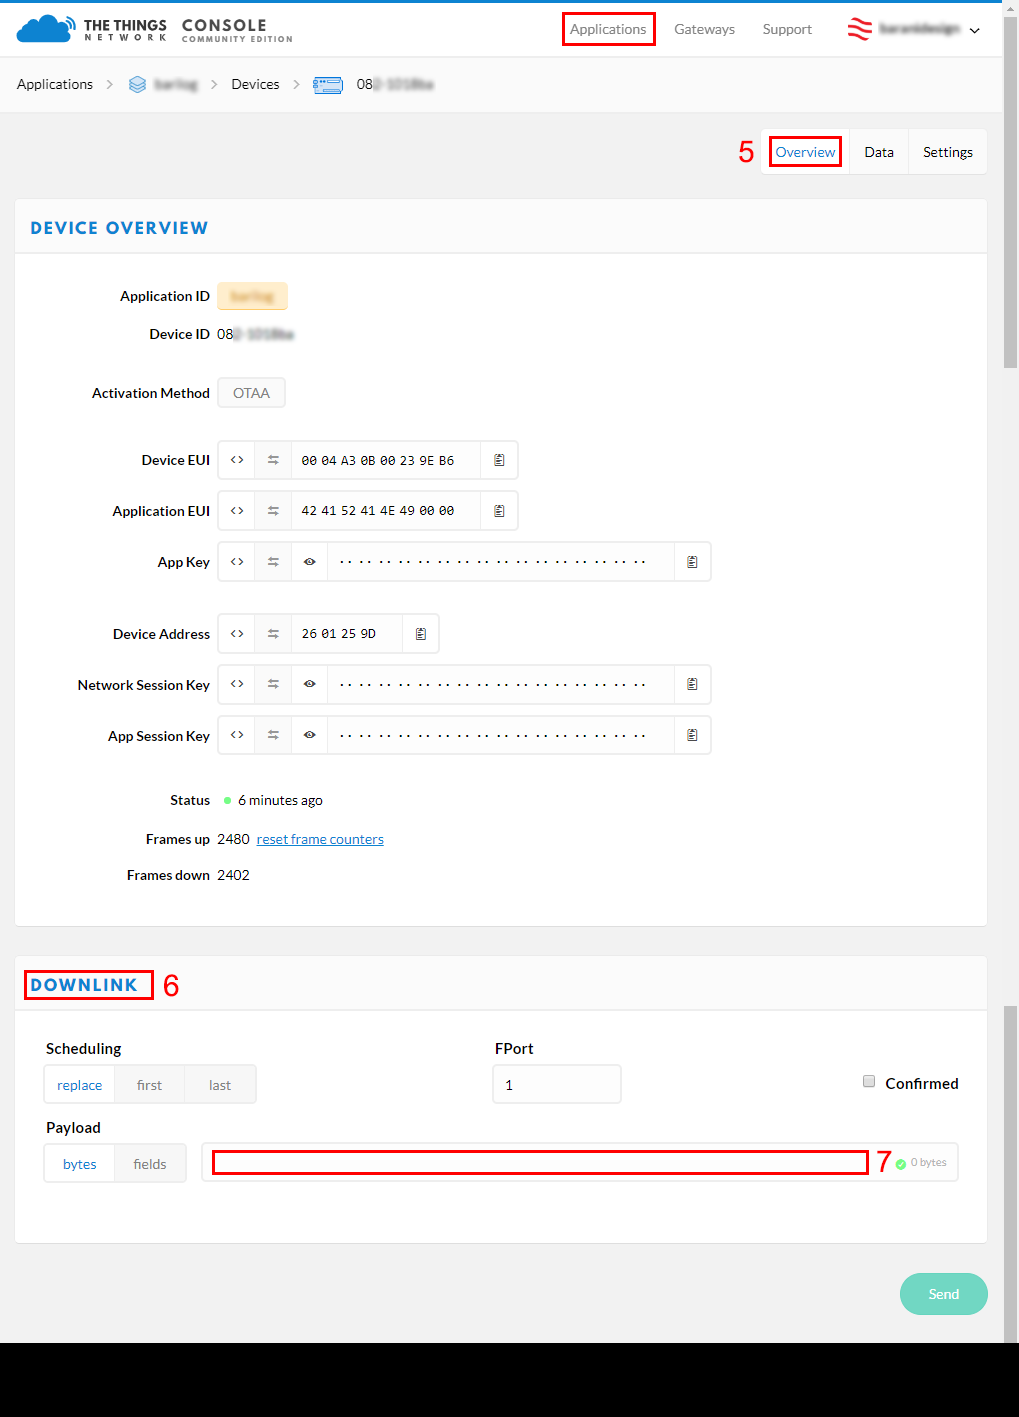 3. under device info, scroll down and fill out the downlink section and click send